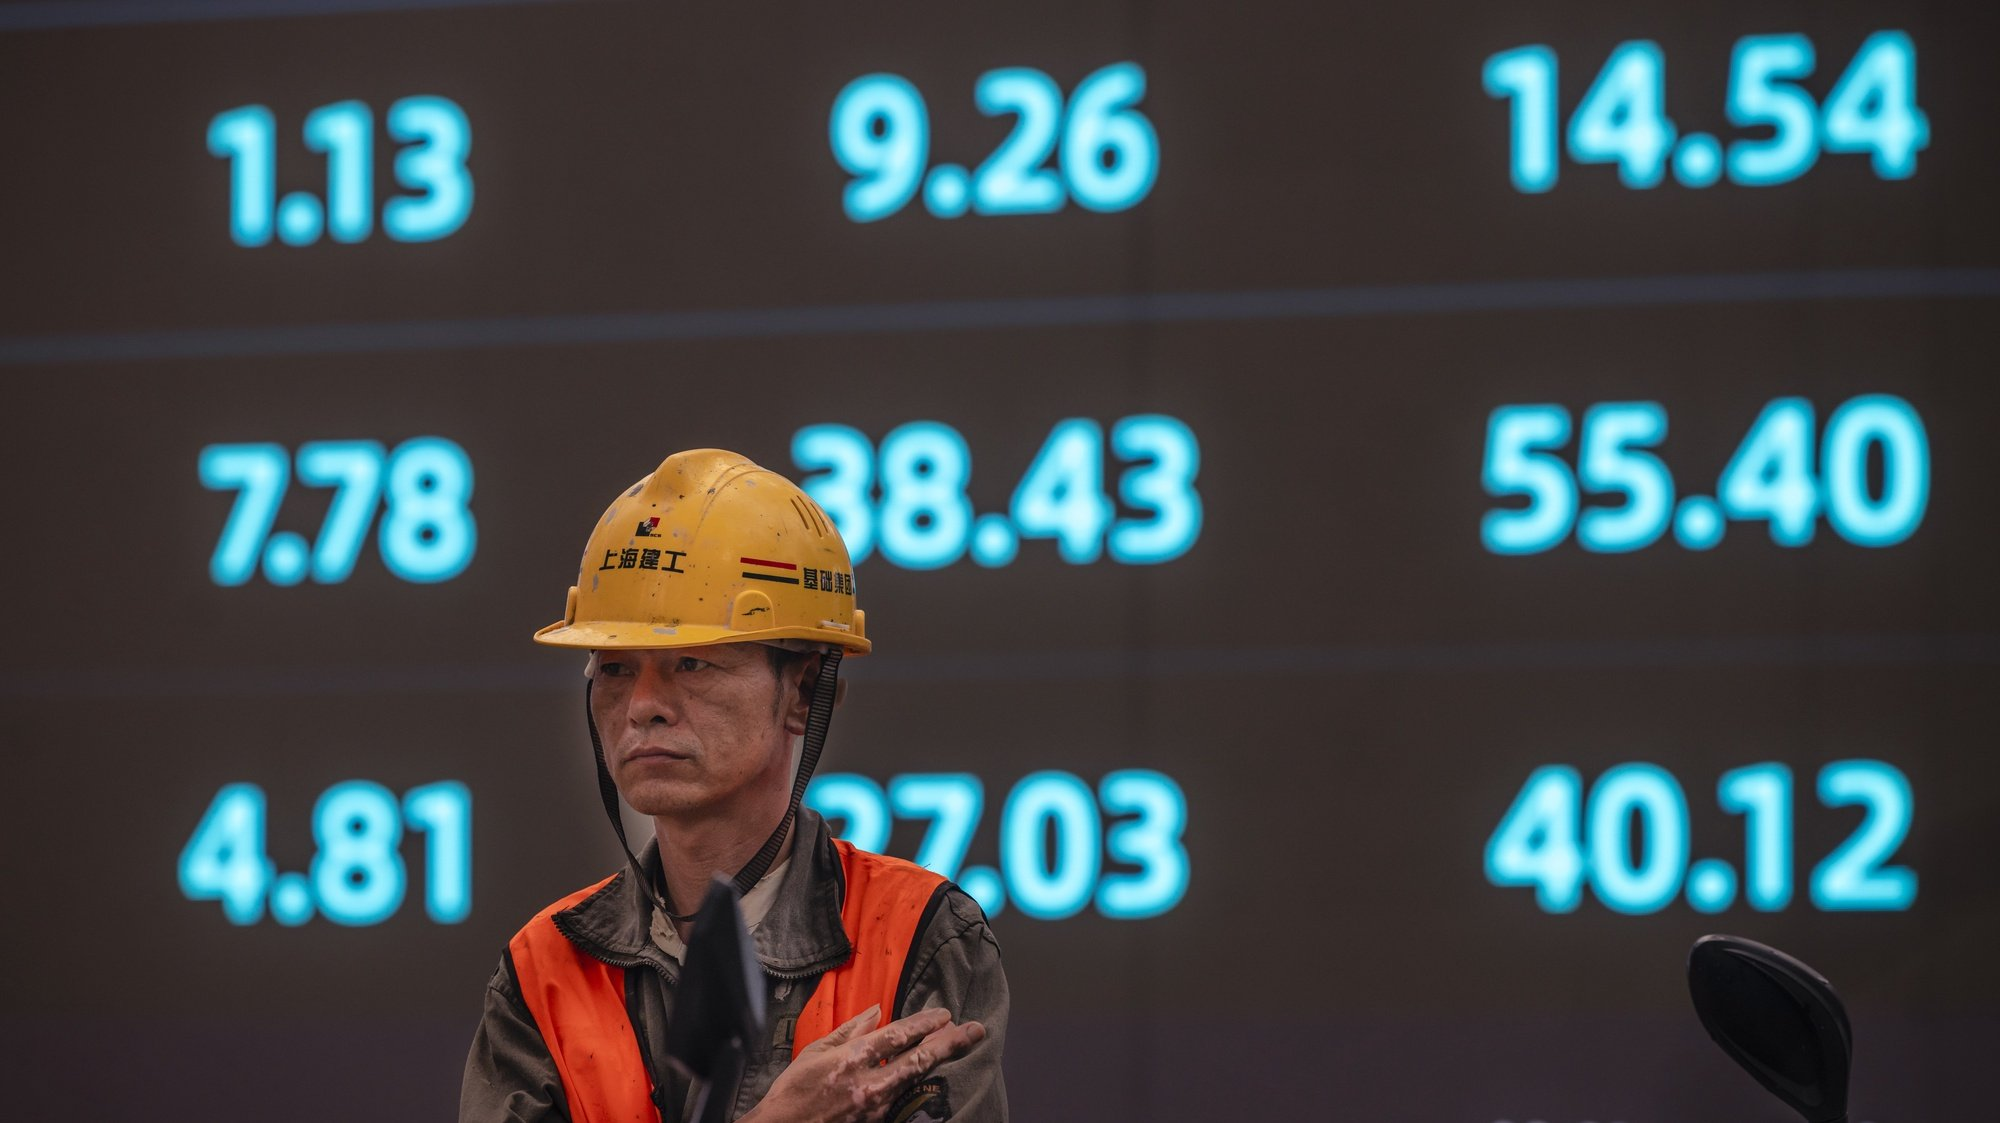 epa09510804 A worker stands in front of the screen showing newest stock exchange and economic data in Shanghai, China, 07 October 2021. A debt crisis and rising bond yields of China Evergrande Group made a whirlwind for other Chinese real estate developers who suspended their stock trading this week in the Hong Kong market. There are concerns and speculations in the Hong Kong stock market over the uncertainty and market value.  EPA/ALEX PLAVEVSKI